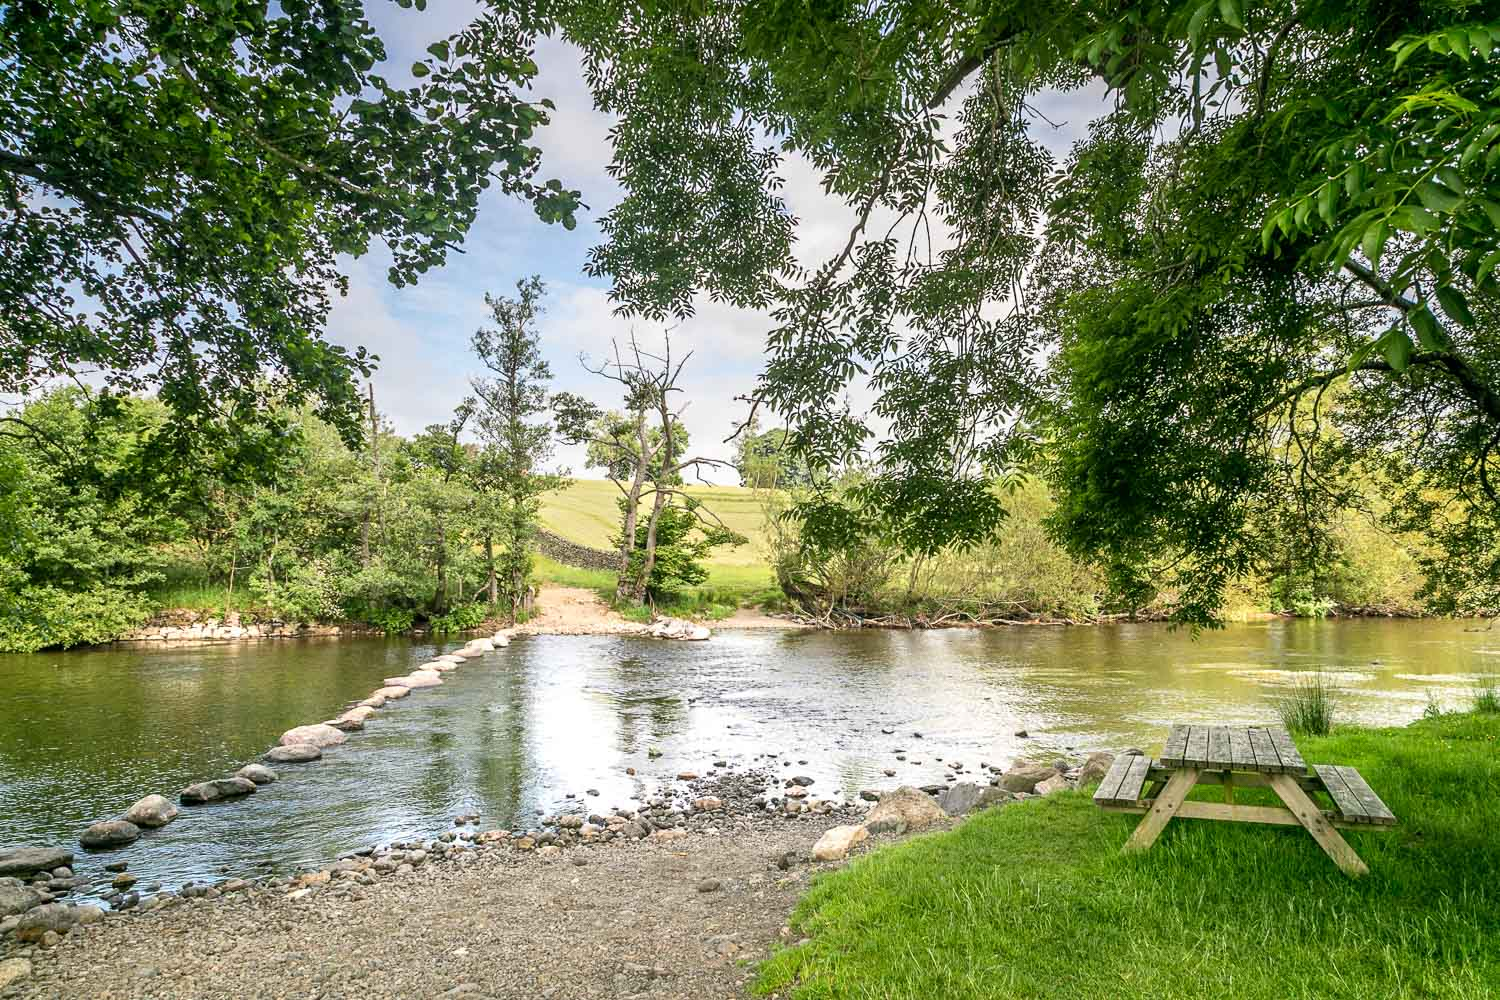 River Eamont, stepping stones